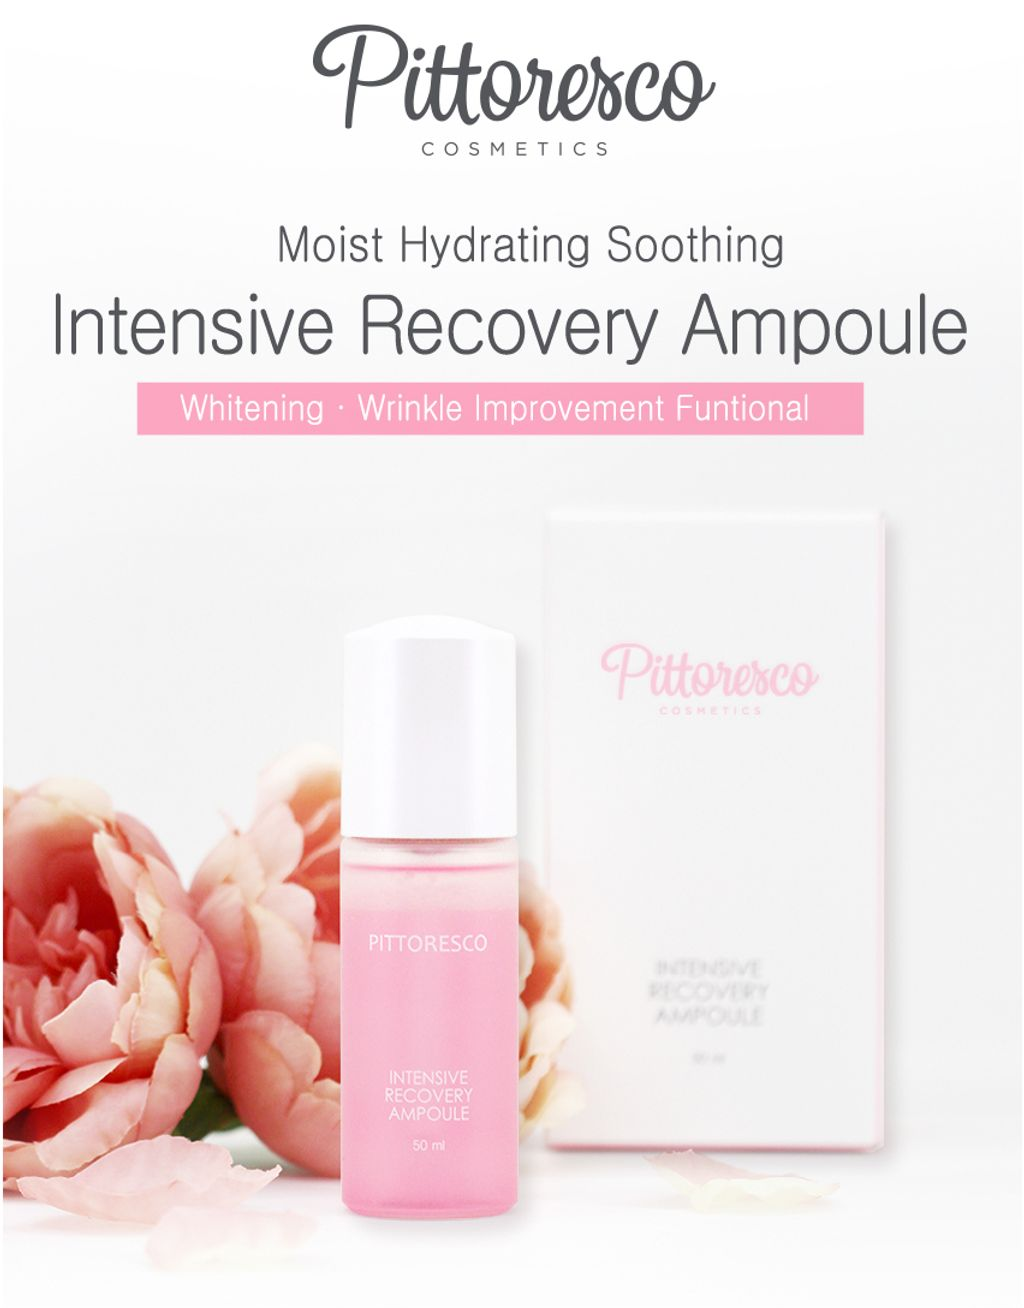 INTENSIVE RECOVERY AMPOULE CATALOGUE-01.jpg